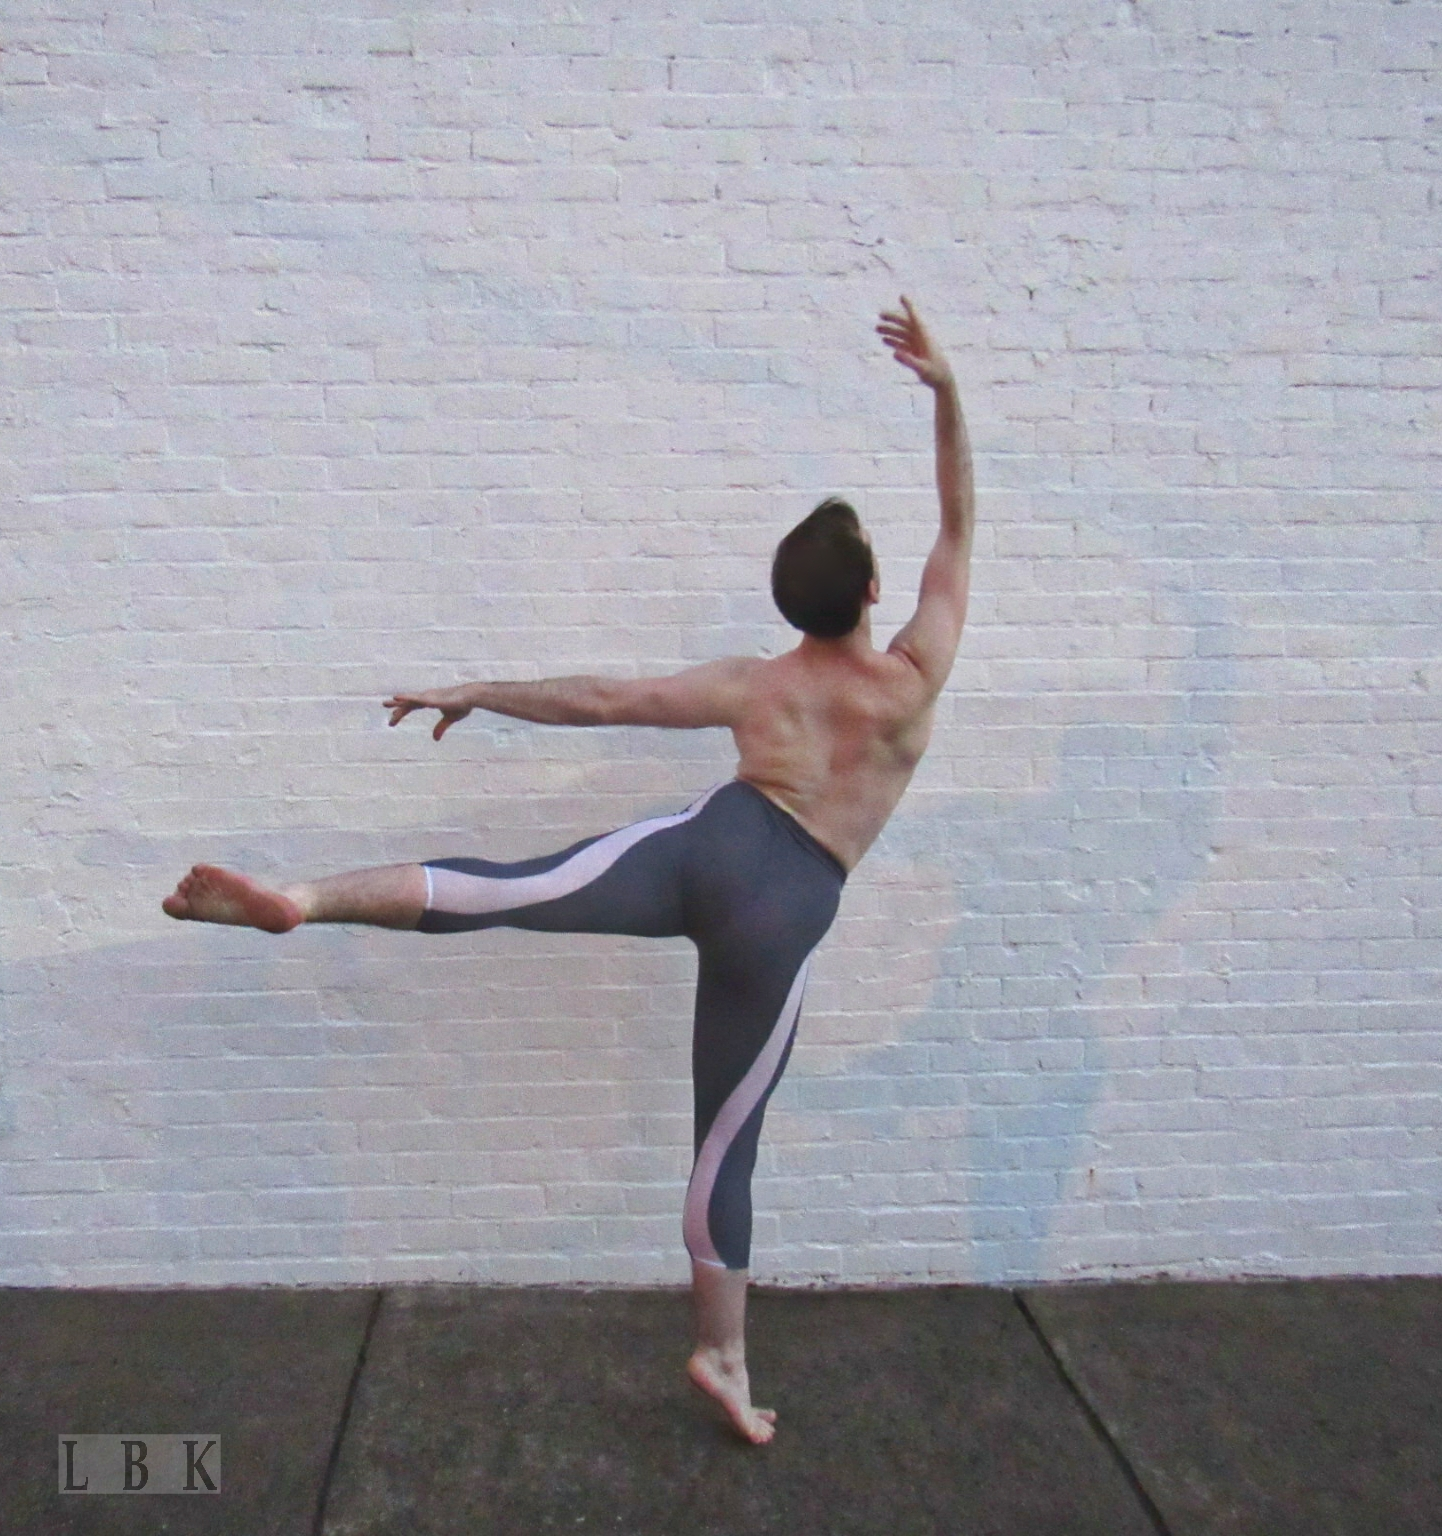 Sean Daly, @seantheswan of Nashville Ballet 2, wears Mesh Men's Tights in  Steel and White Mesh